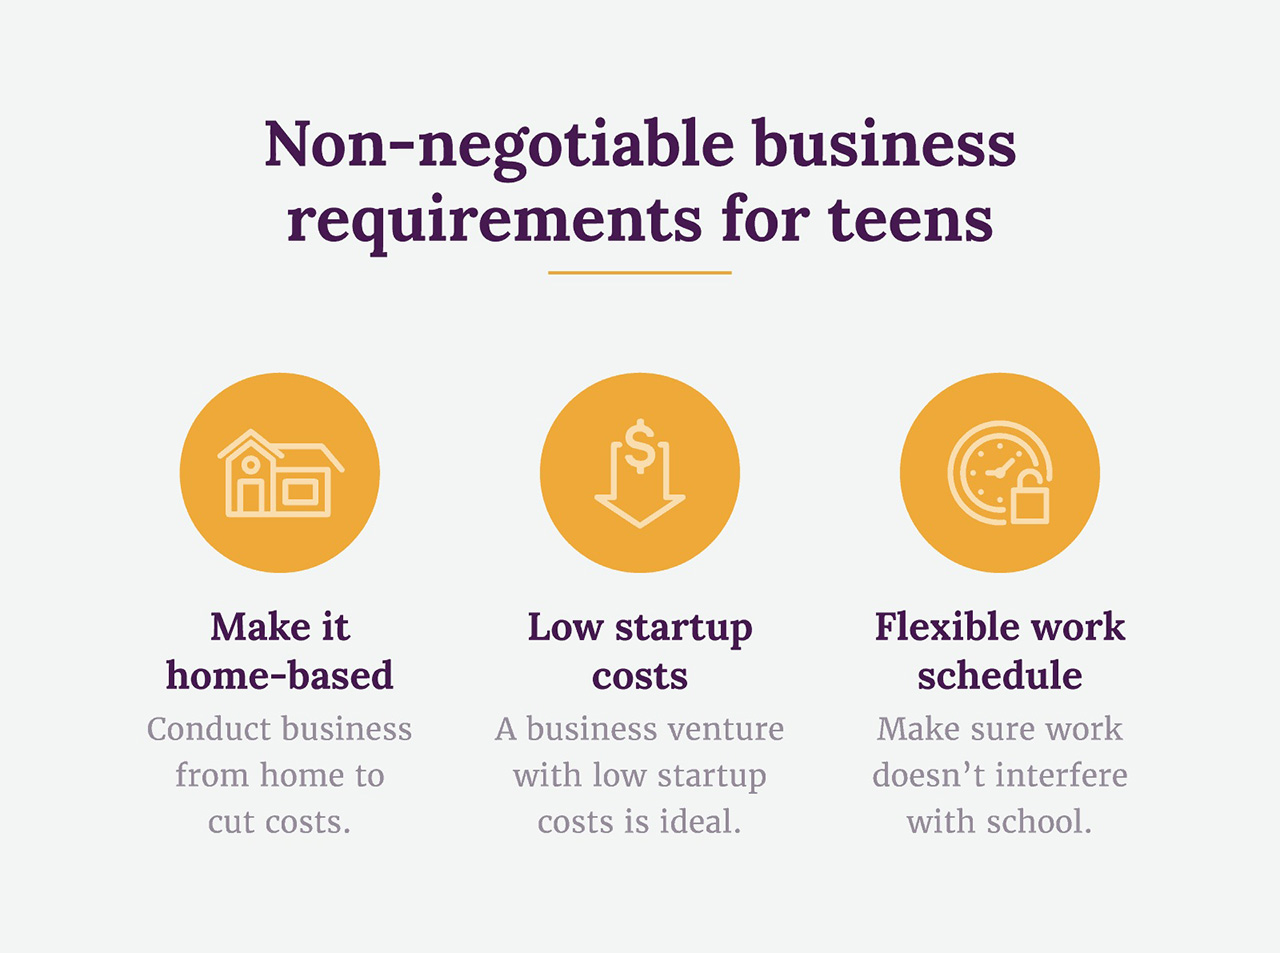 Non-negotiable business requirements for teens